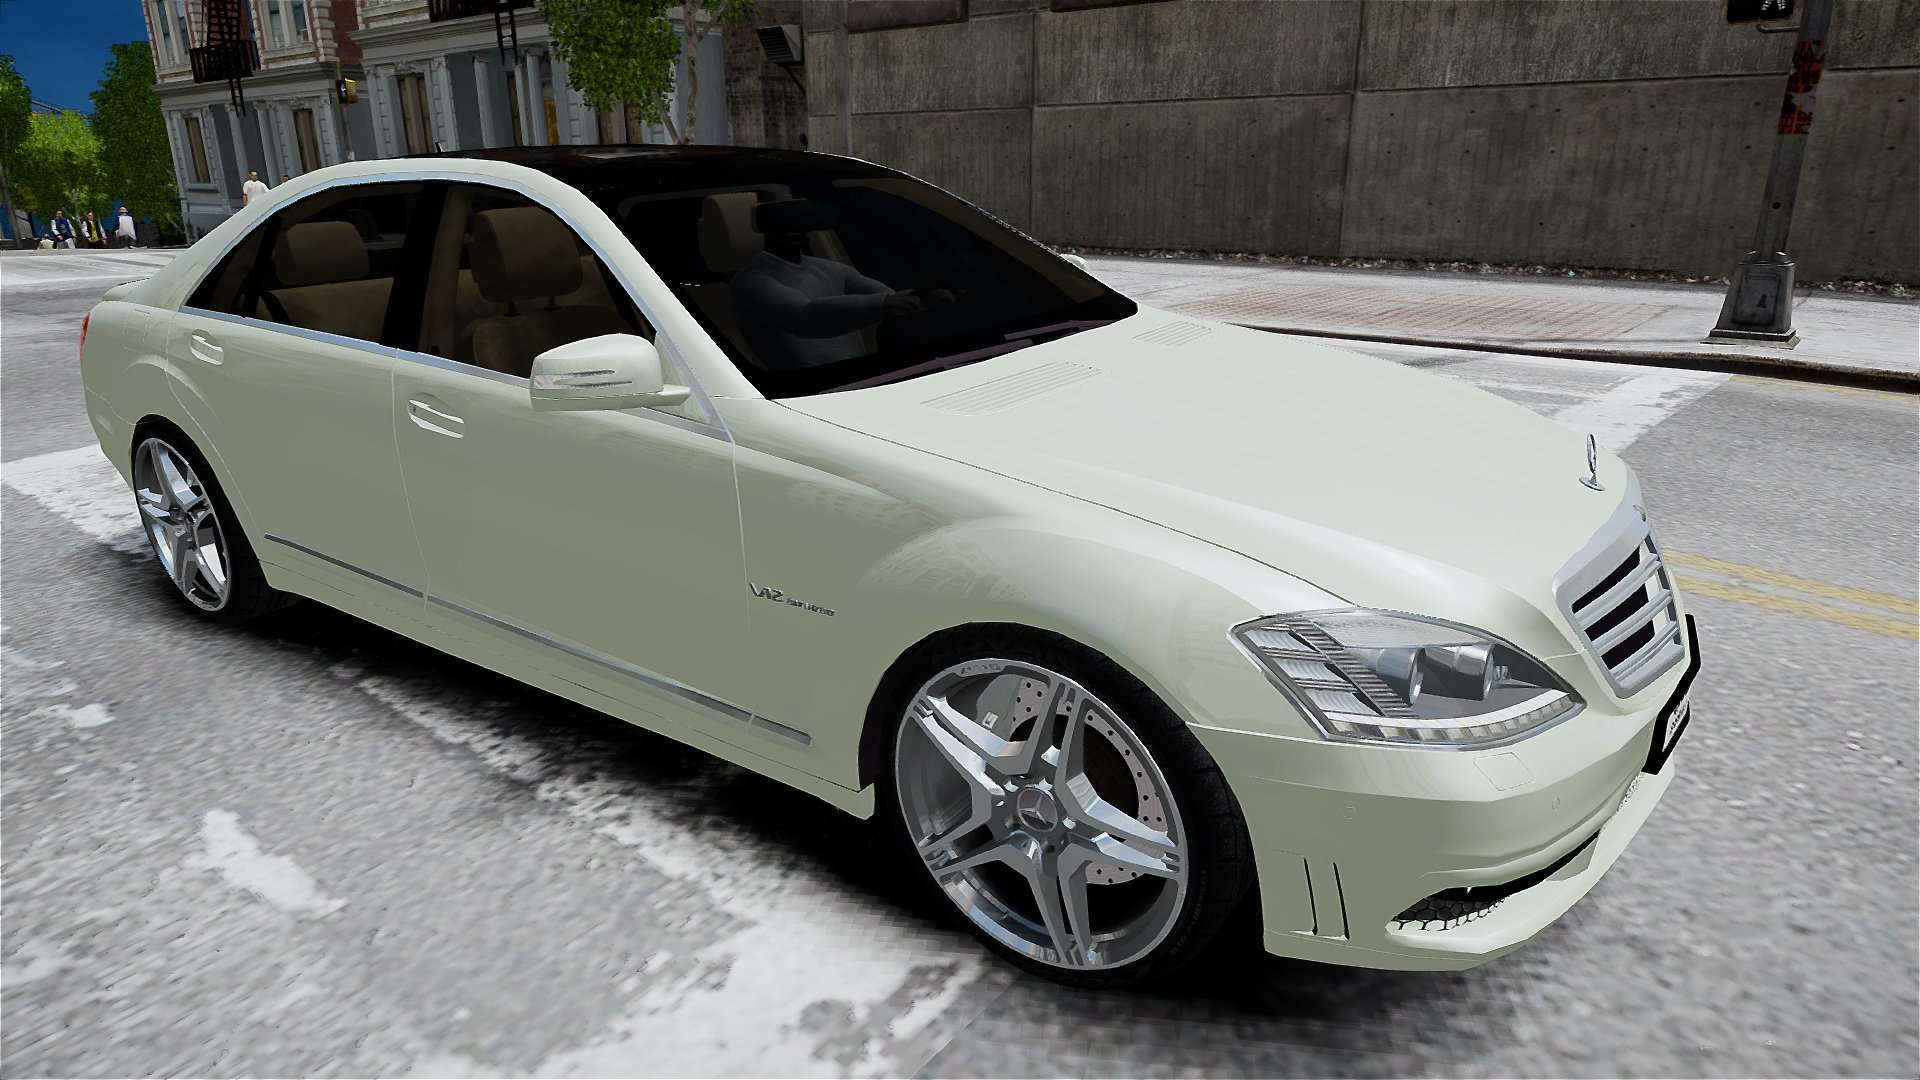 Mercedes benz s65 amg long 2010 for gta 4 for Mercedes benz s class amg 2010